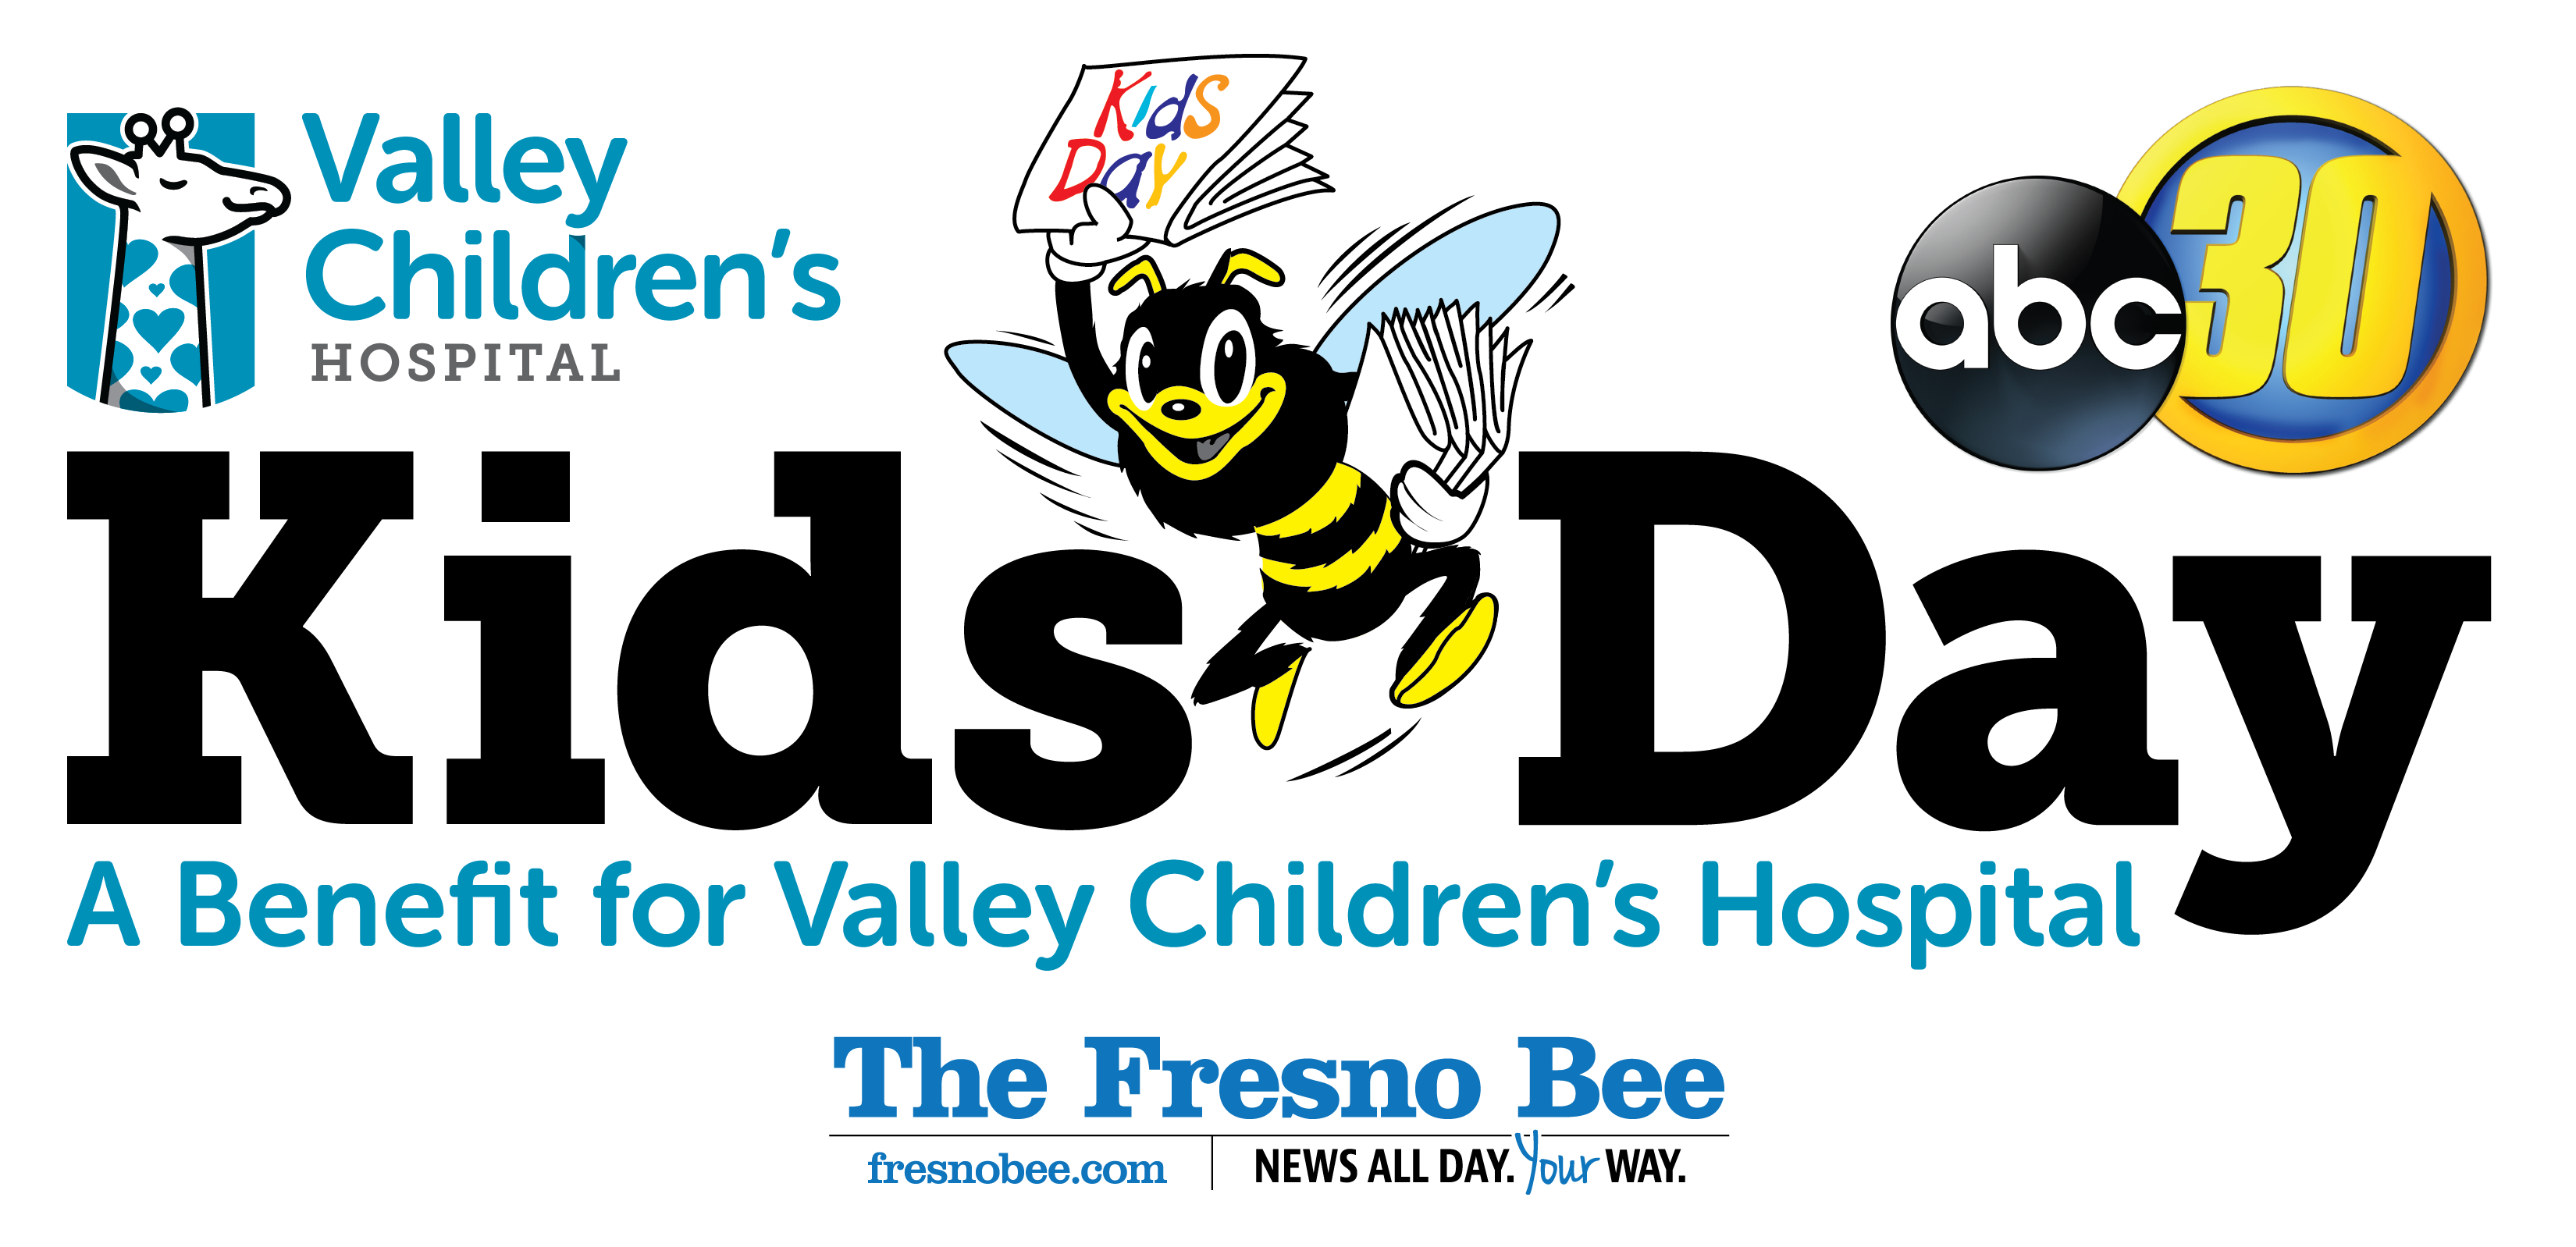 Kids Day. A benefit for Valley Children's Hospital